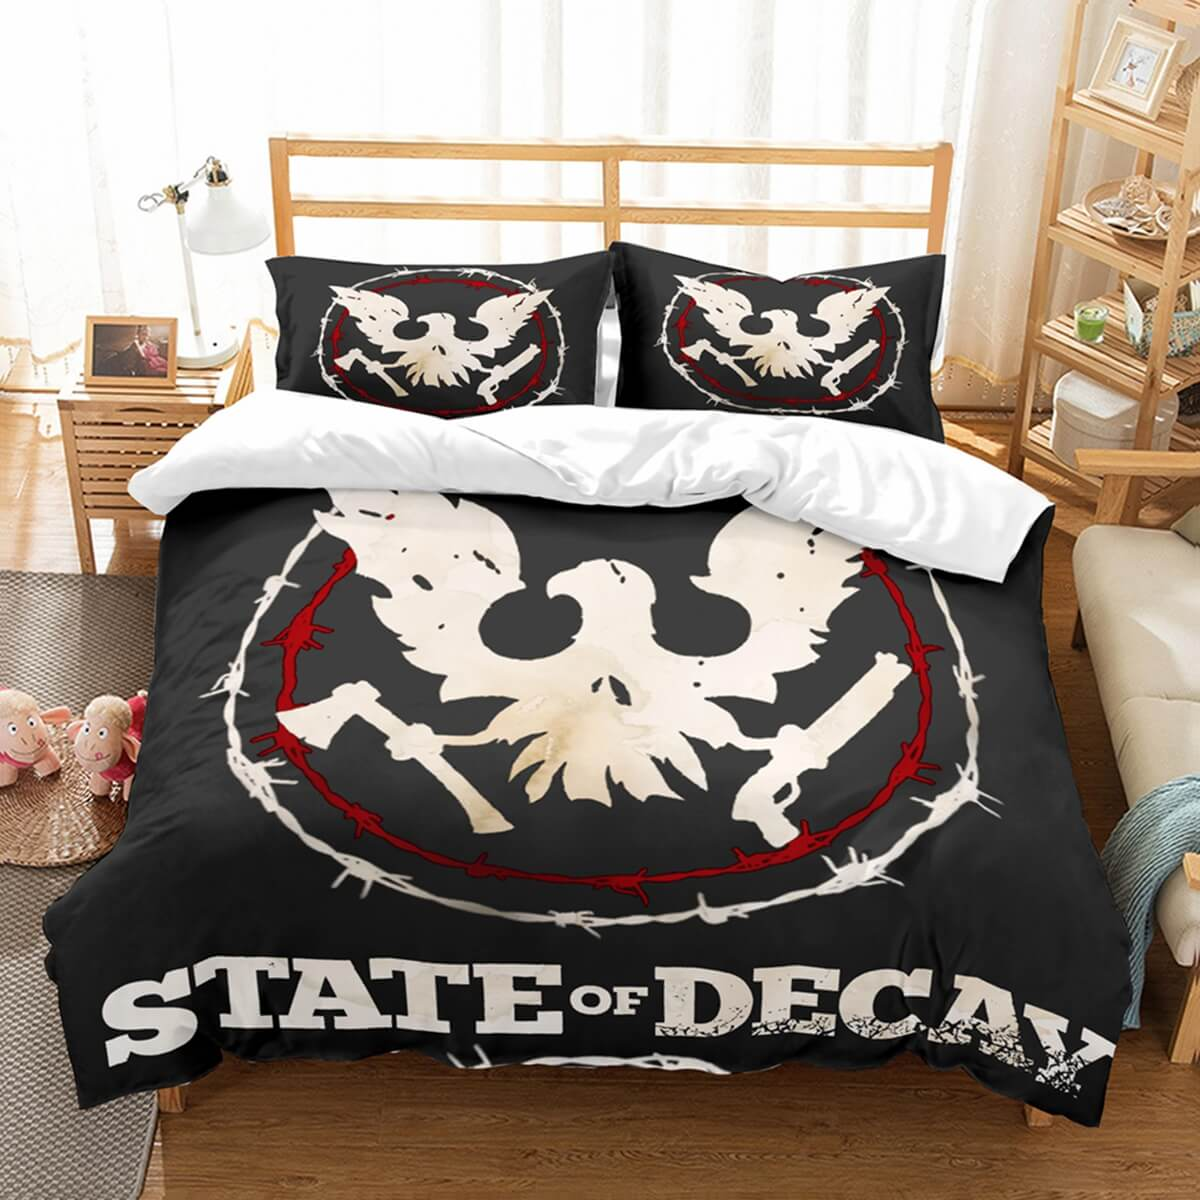 3D Customize State Of Decay 2 Bedding Set Duvet Cover Set Bedroom Set Bedlinen